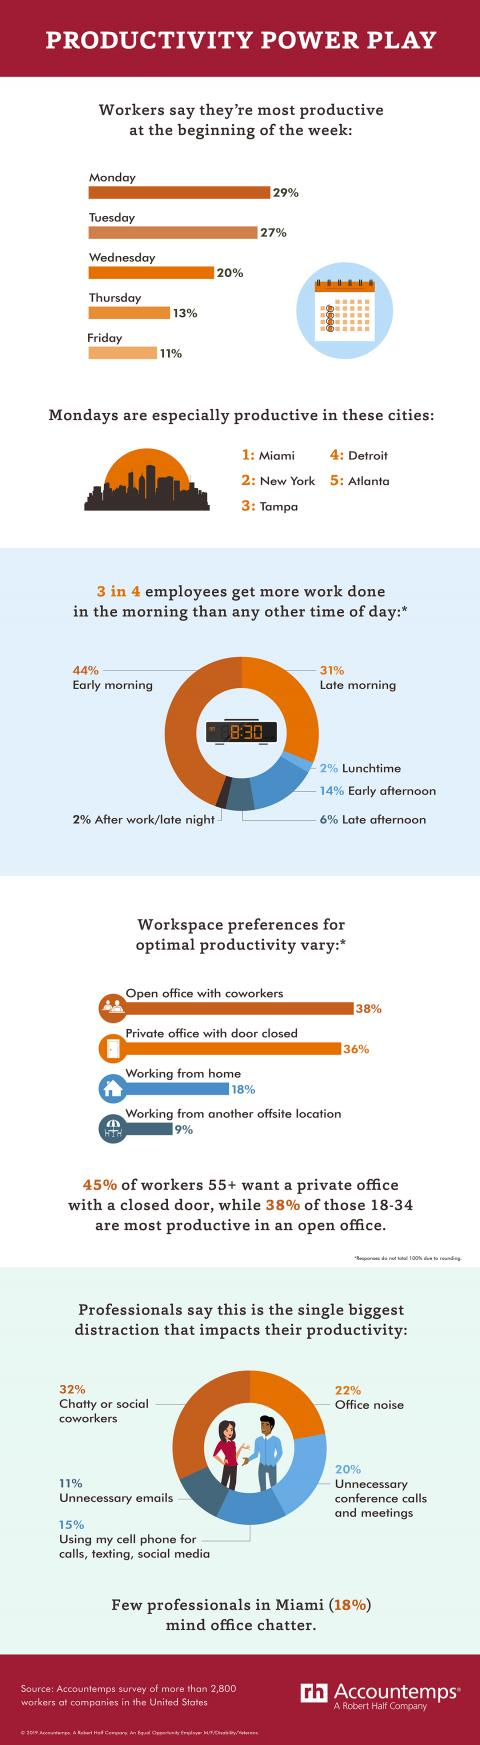 An infographic from Accountemps on workers' productivity patterns